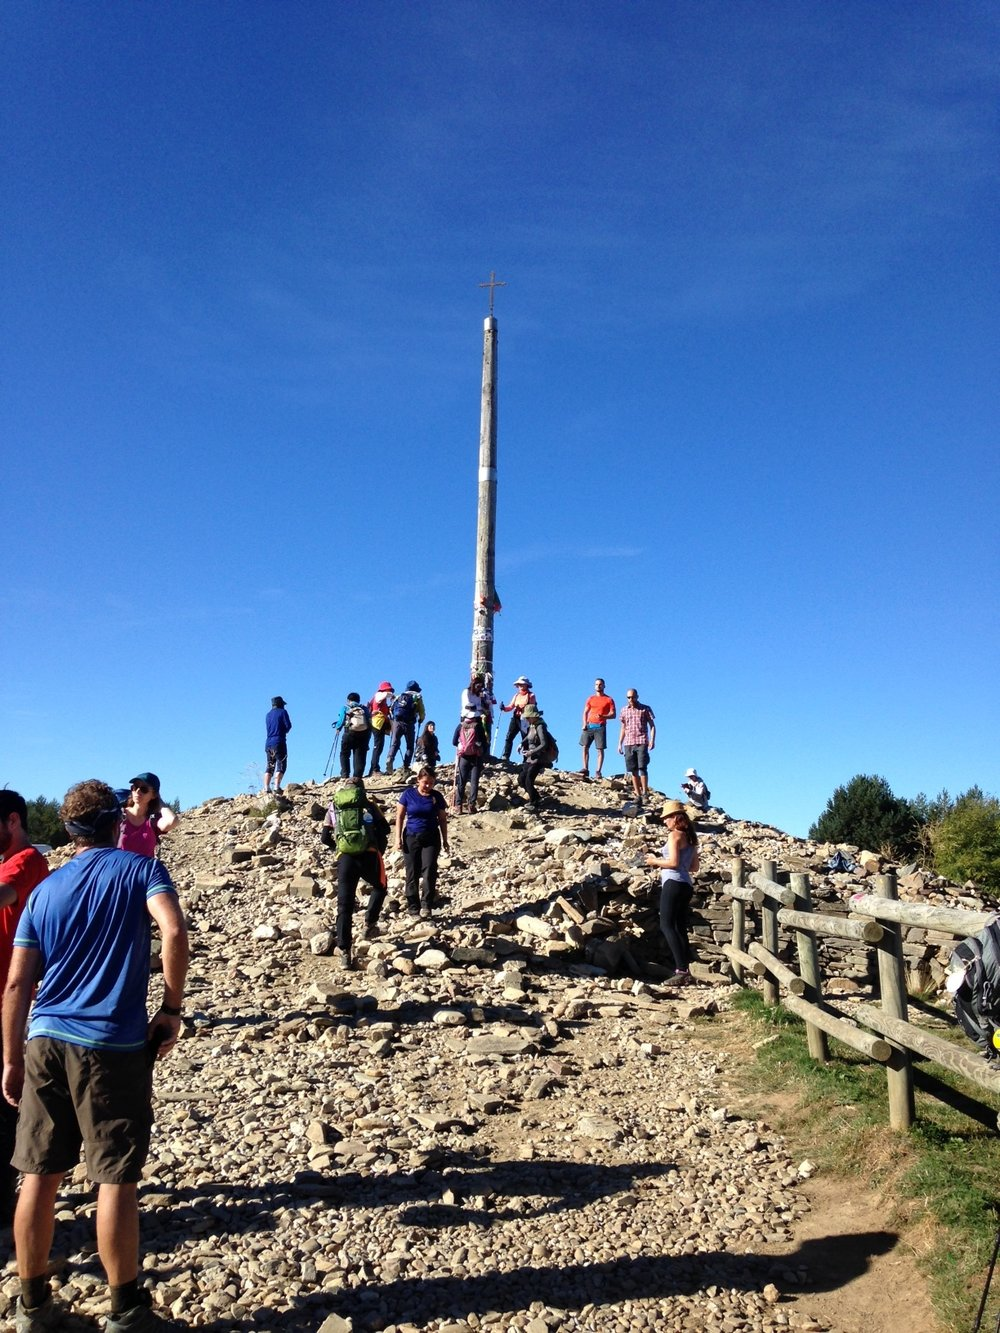 Cruz de Ferro where pilgrims leave a stone from home, also symbolically leaving behind a burden they have carried